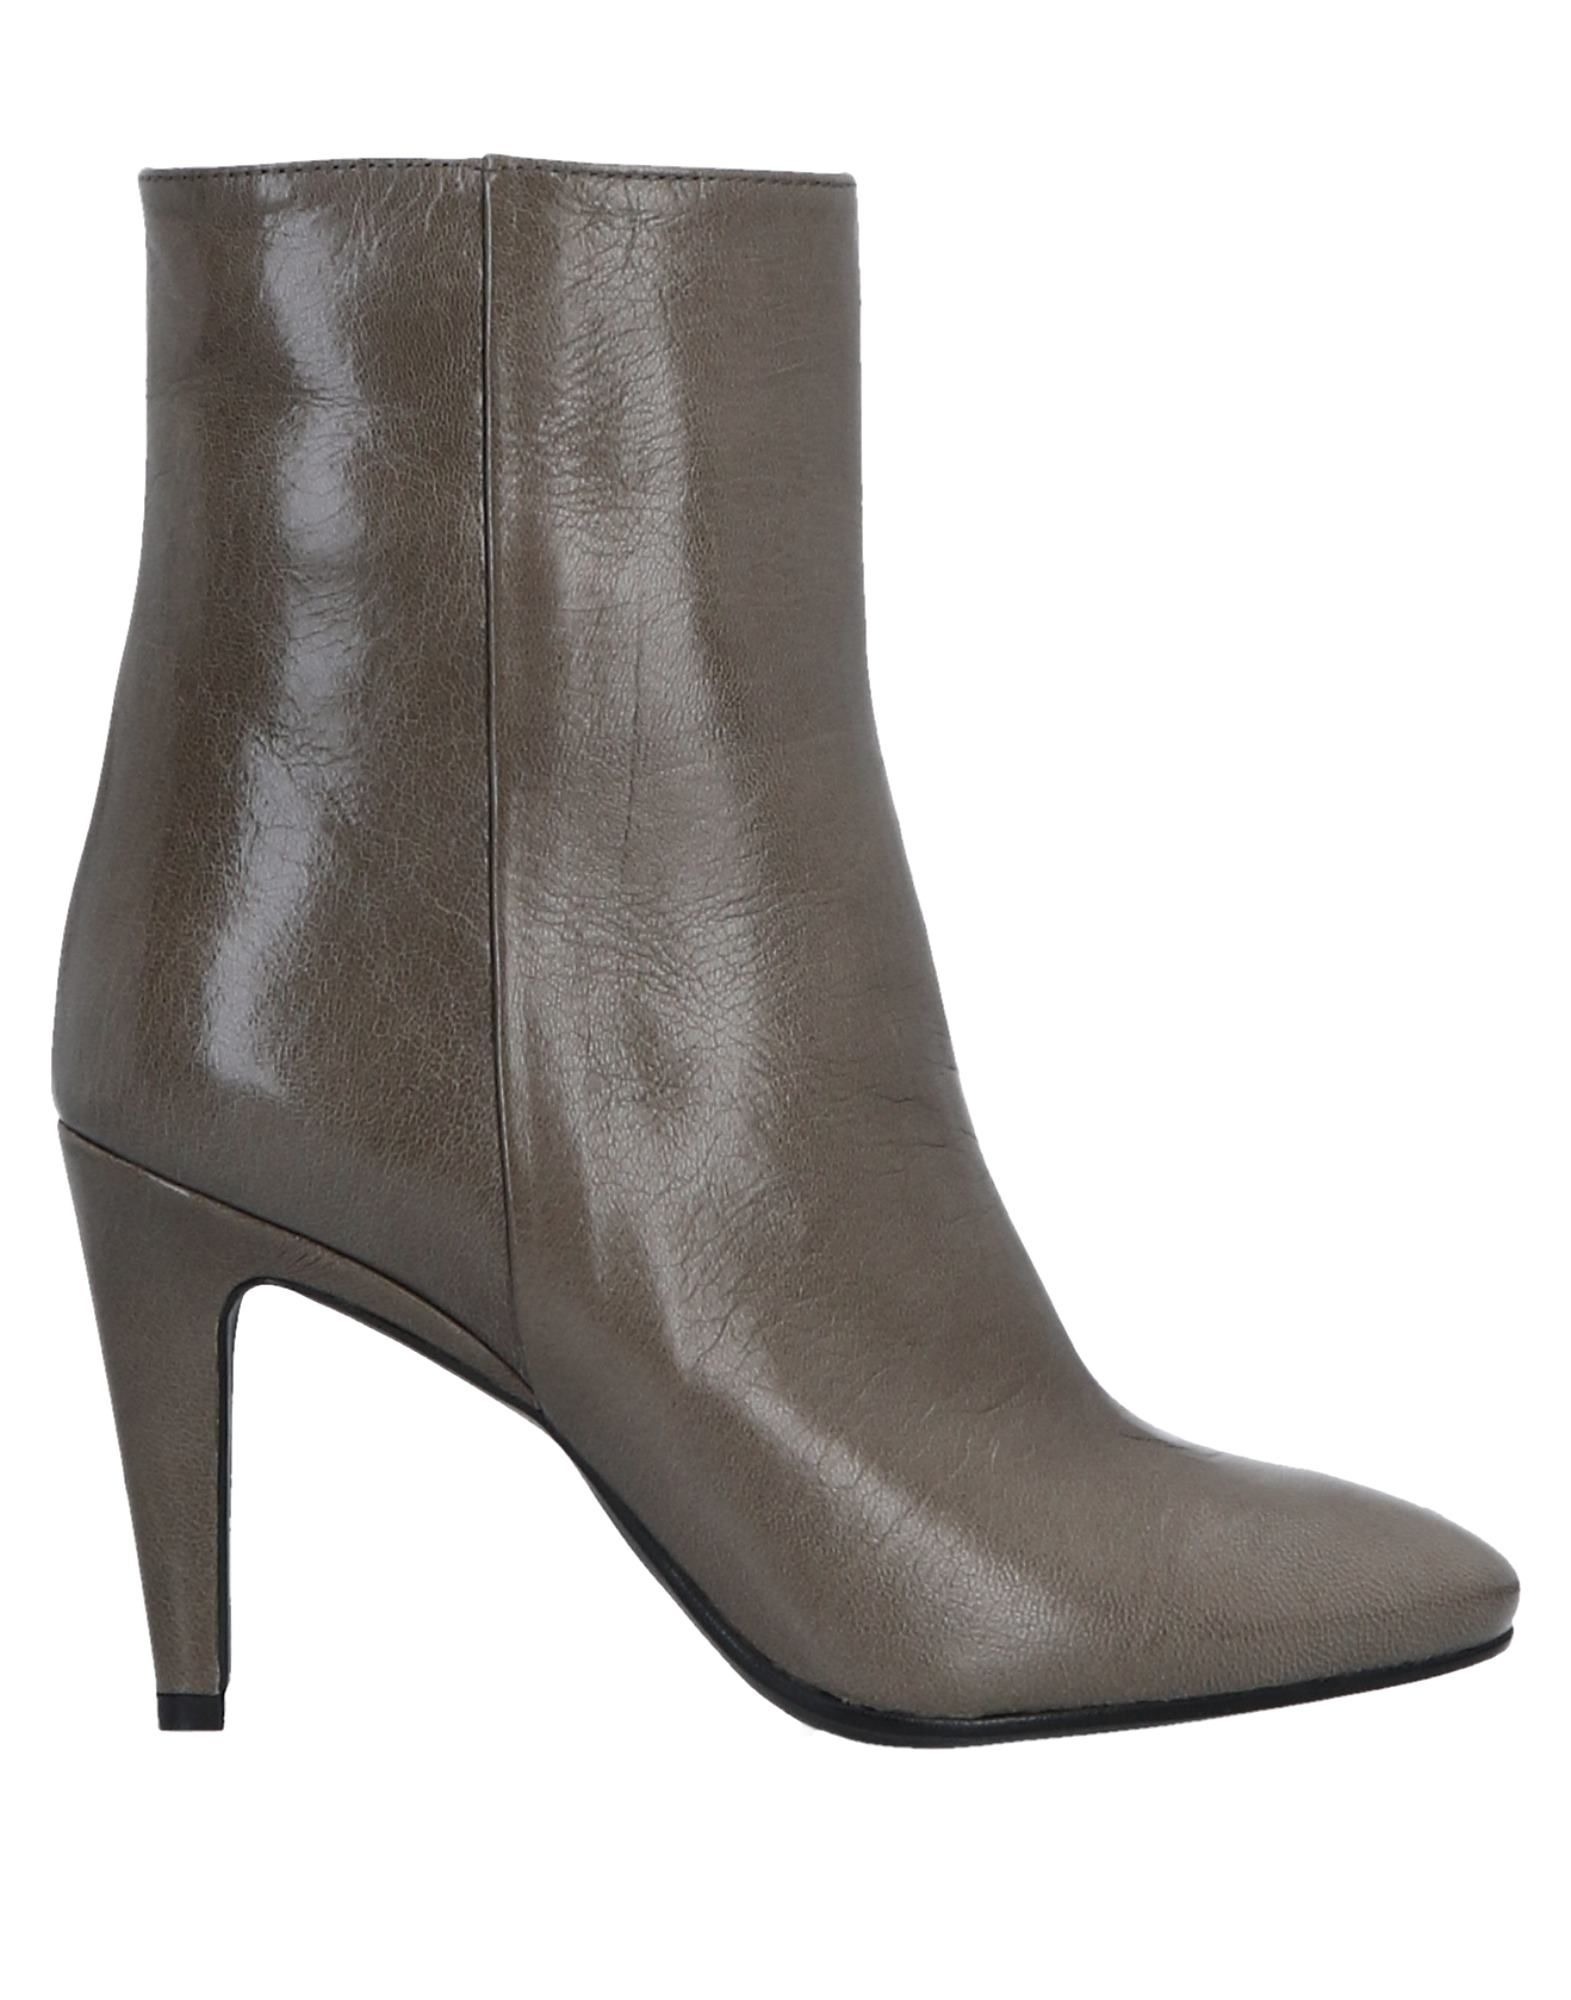 FIORIFRANCESI Ankle Boot in Lead